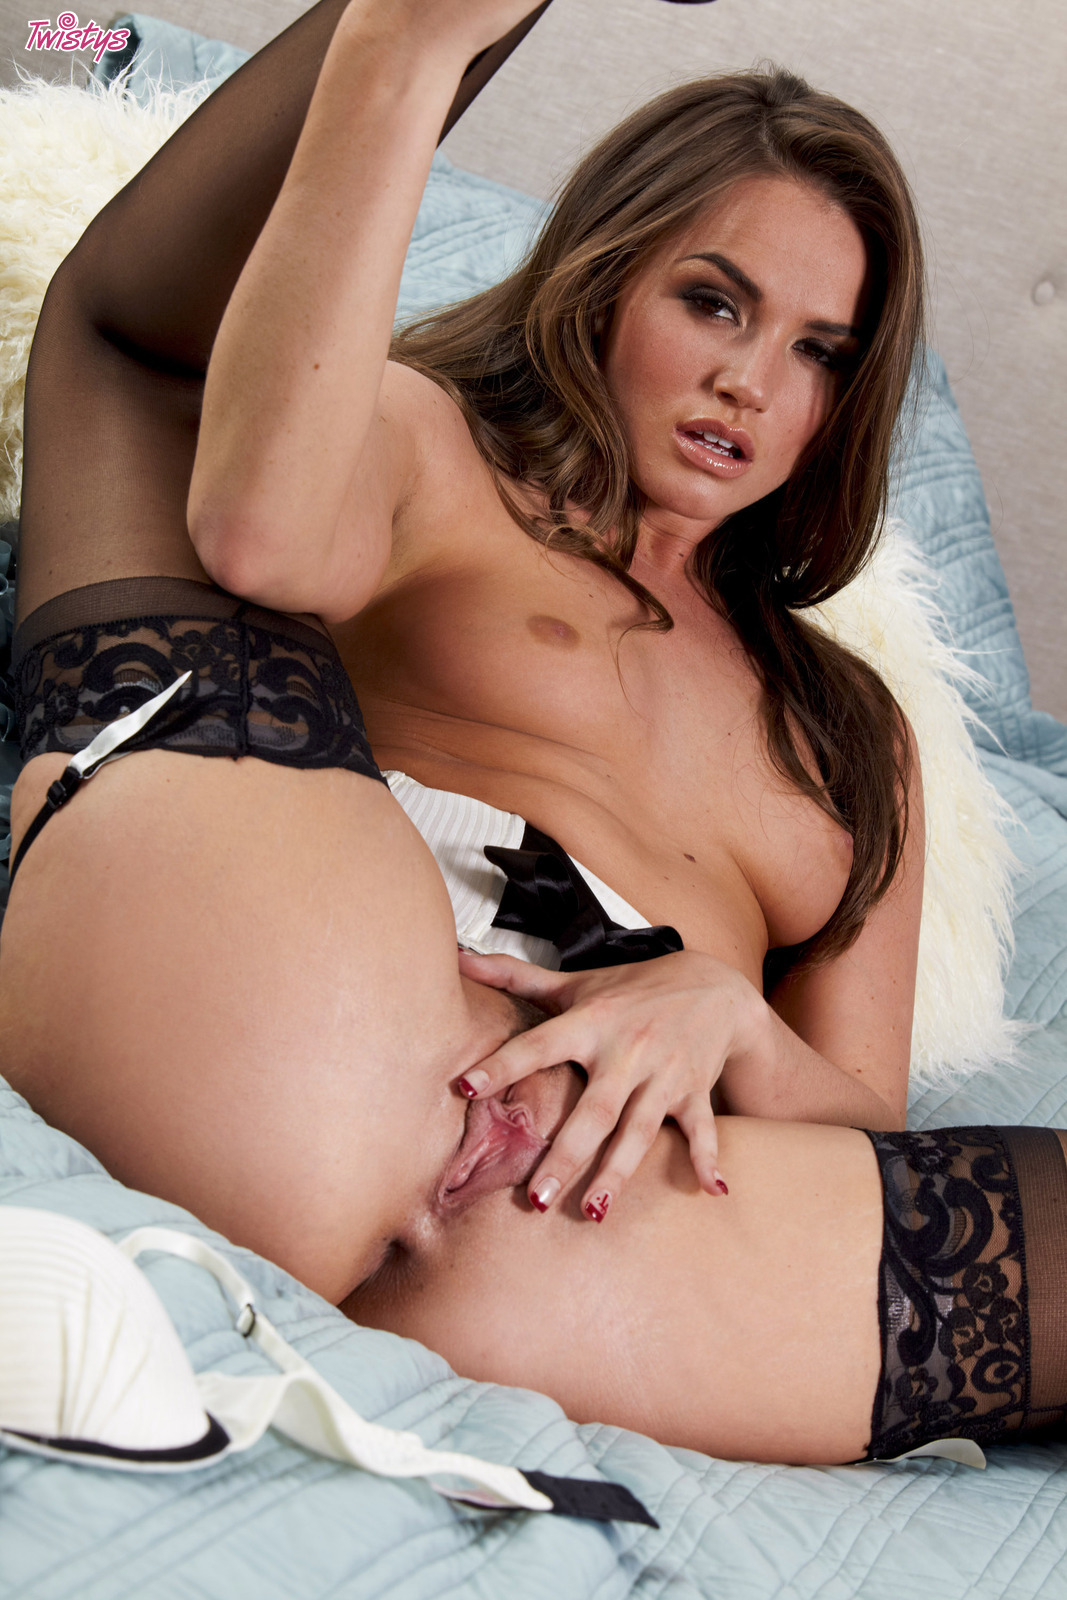 tori black nude gallery